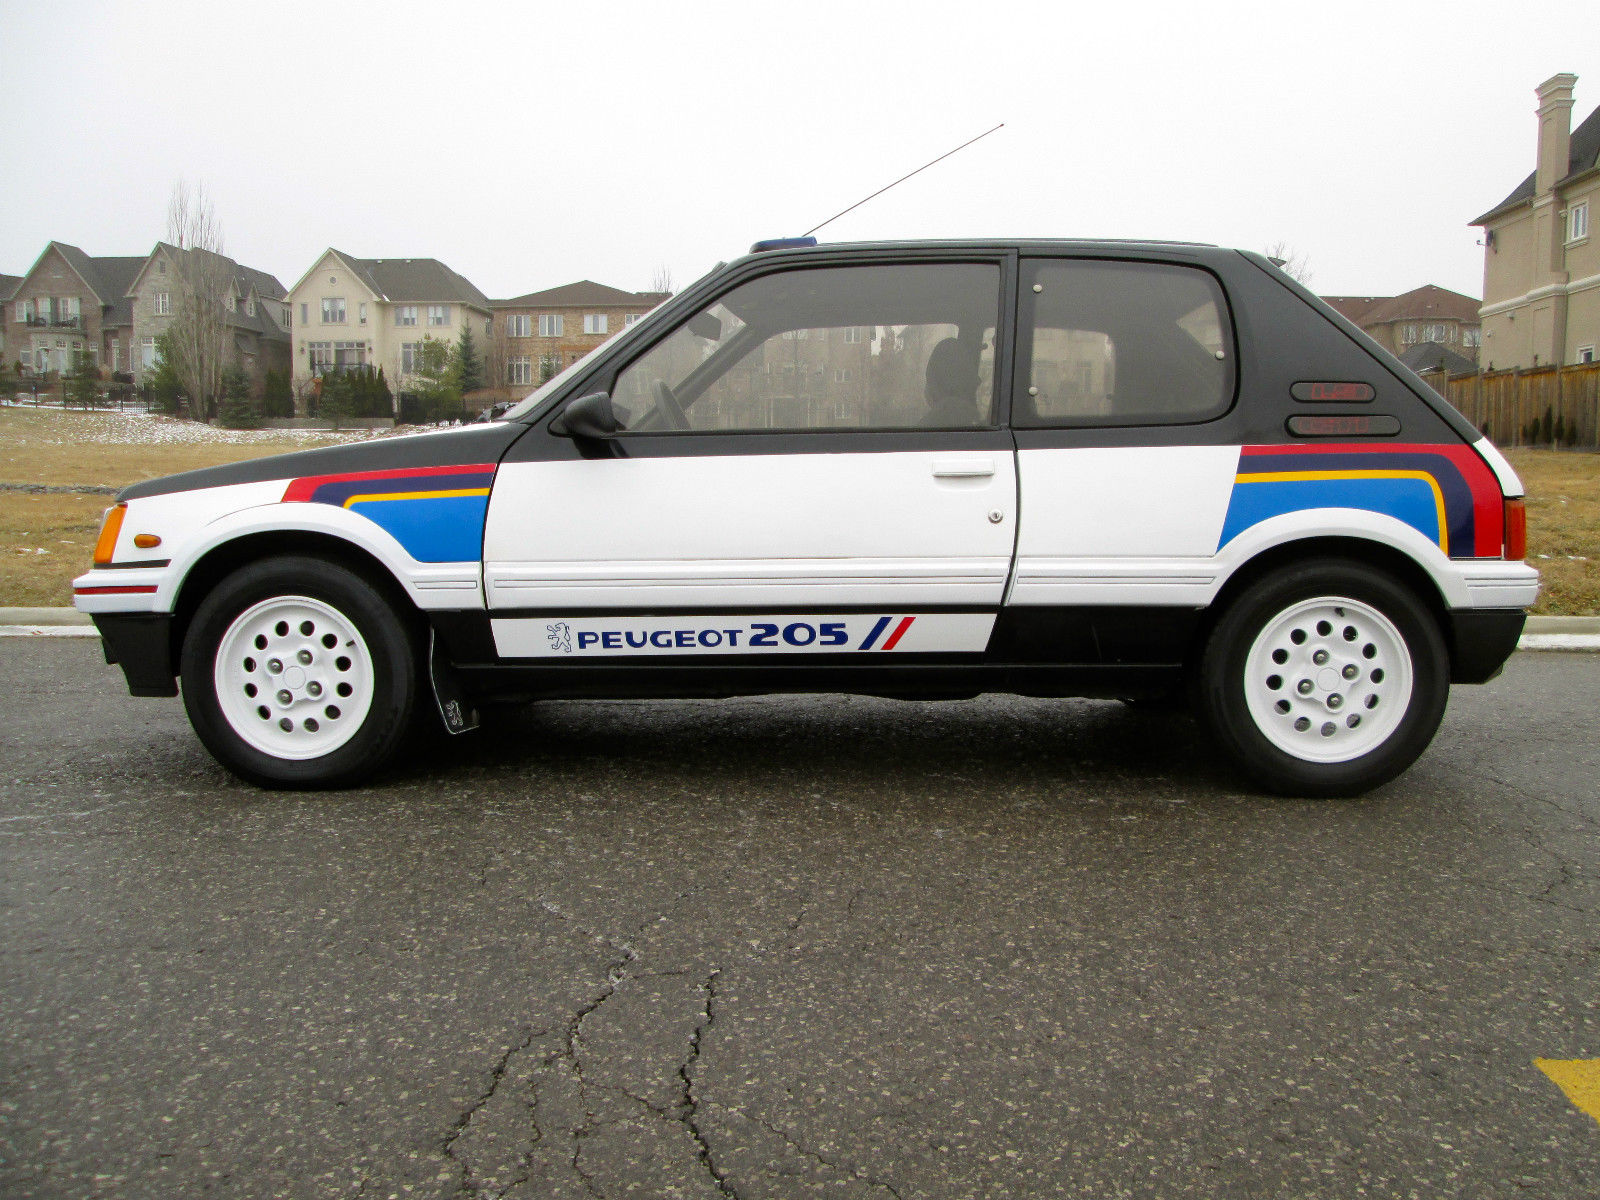 88 peugeot 205 gti 1 9 rally stripes 33k orig miles timecapsule norust usa legal classic. Black Bedroom Furniture Sets. Home Design Ideas